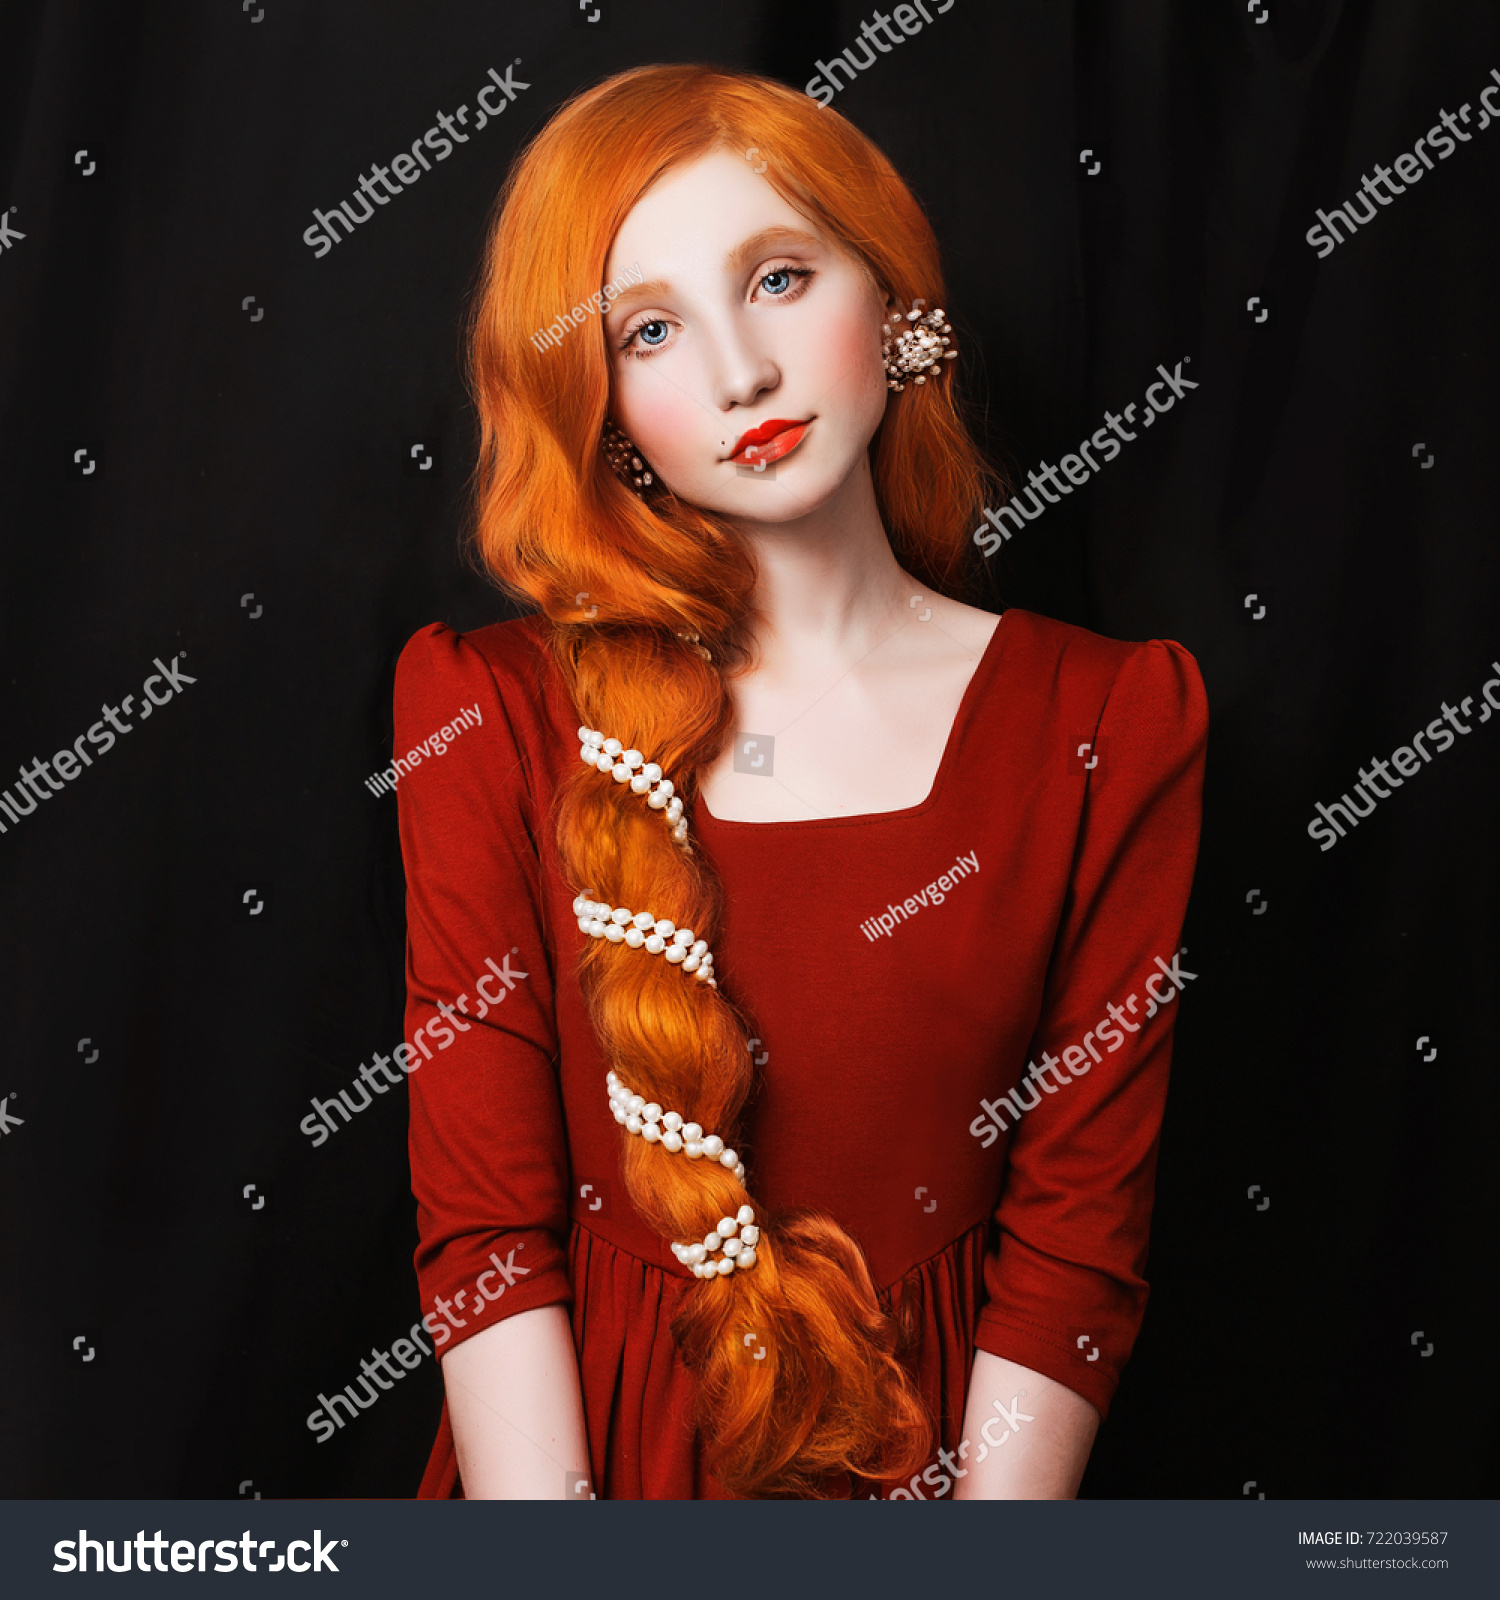 Cute Redhaired Girl Scythe Red Dress Stock Photo (Edit Now) 12